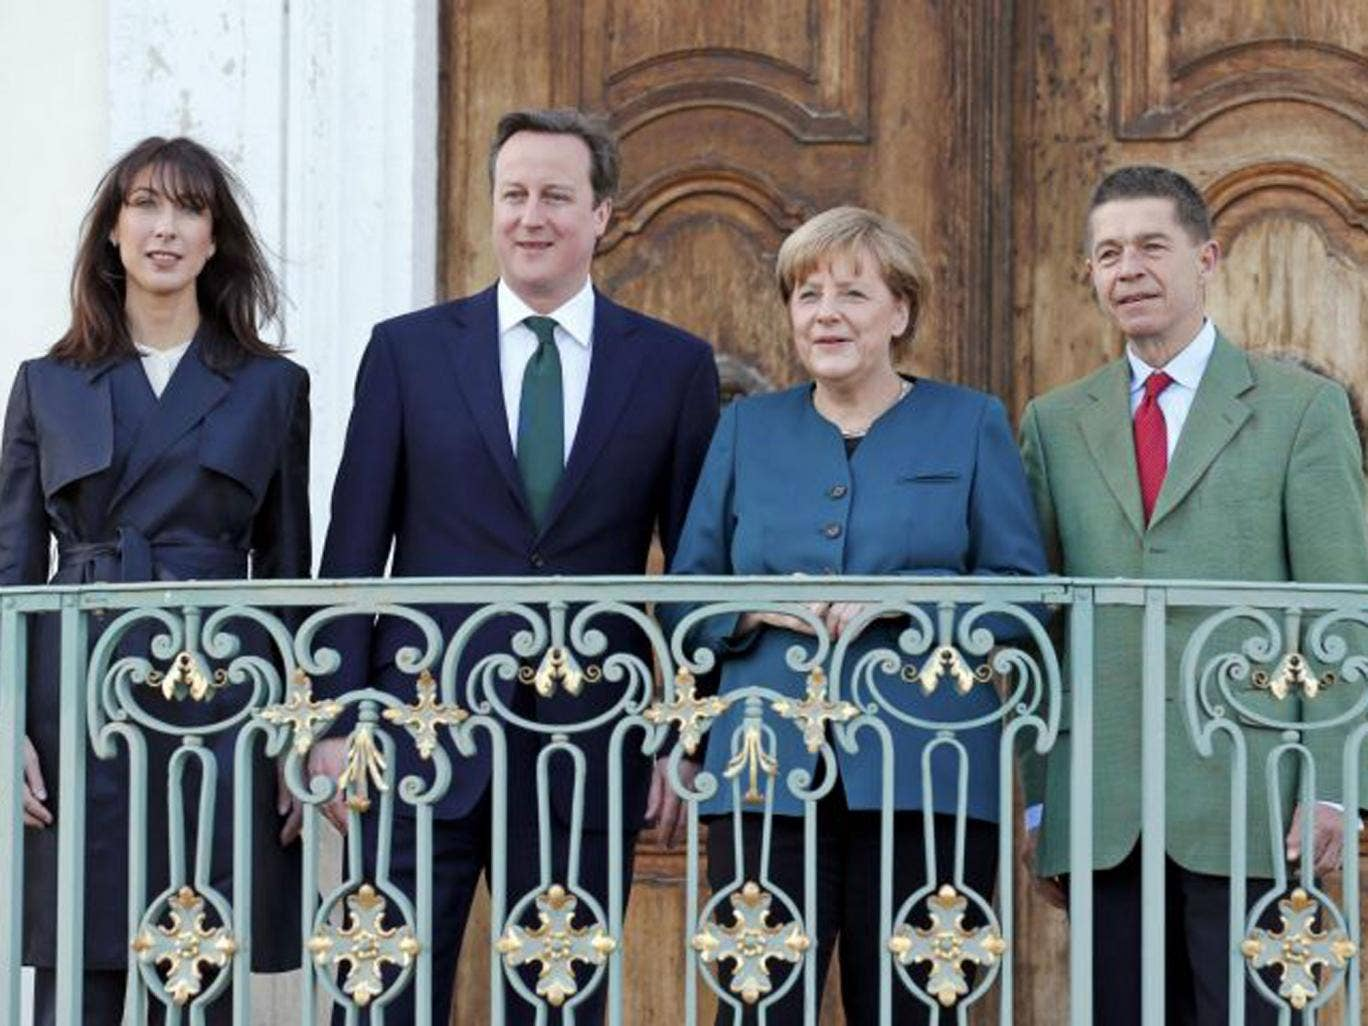 German Chancellor Angela Merkel and her husband Joachim Sauer (R) welcome Britain's Prime Minister David Cameron and his wife Samantha (L) at the government's guest house Schloss Meseberg